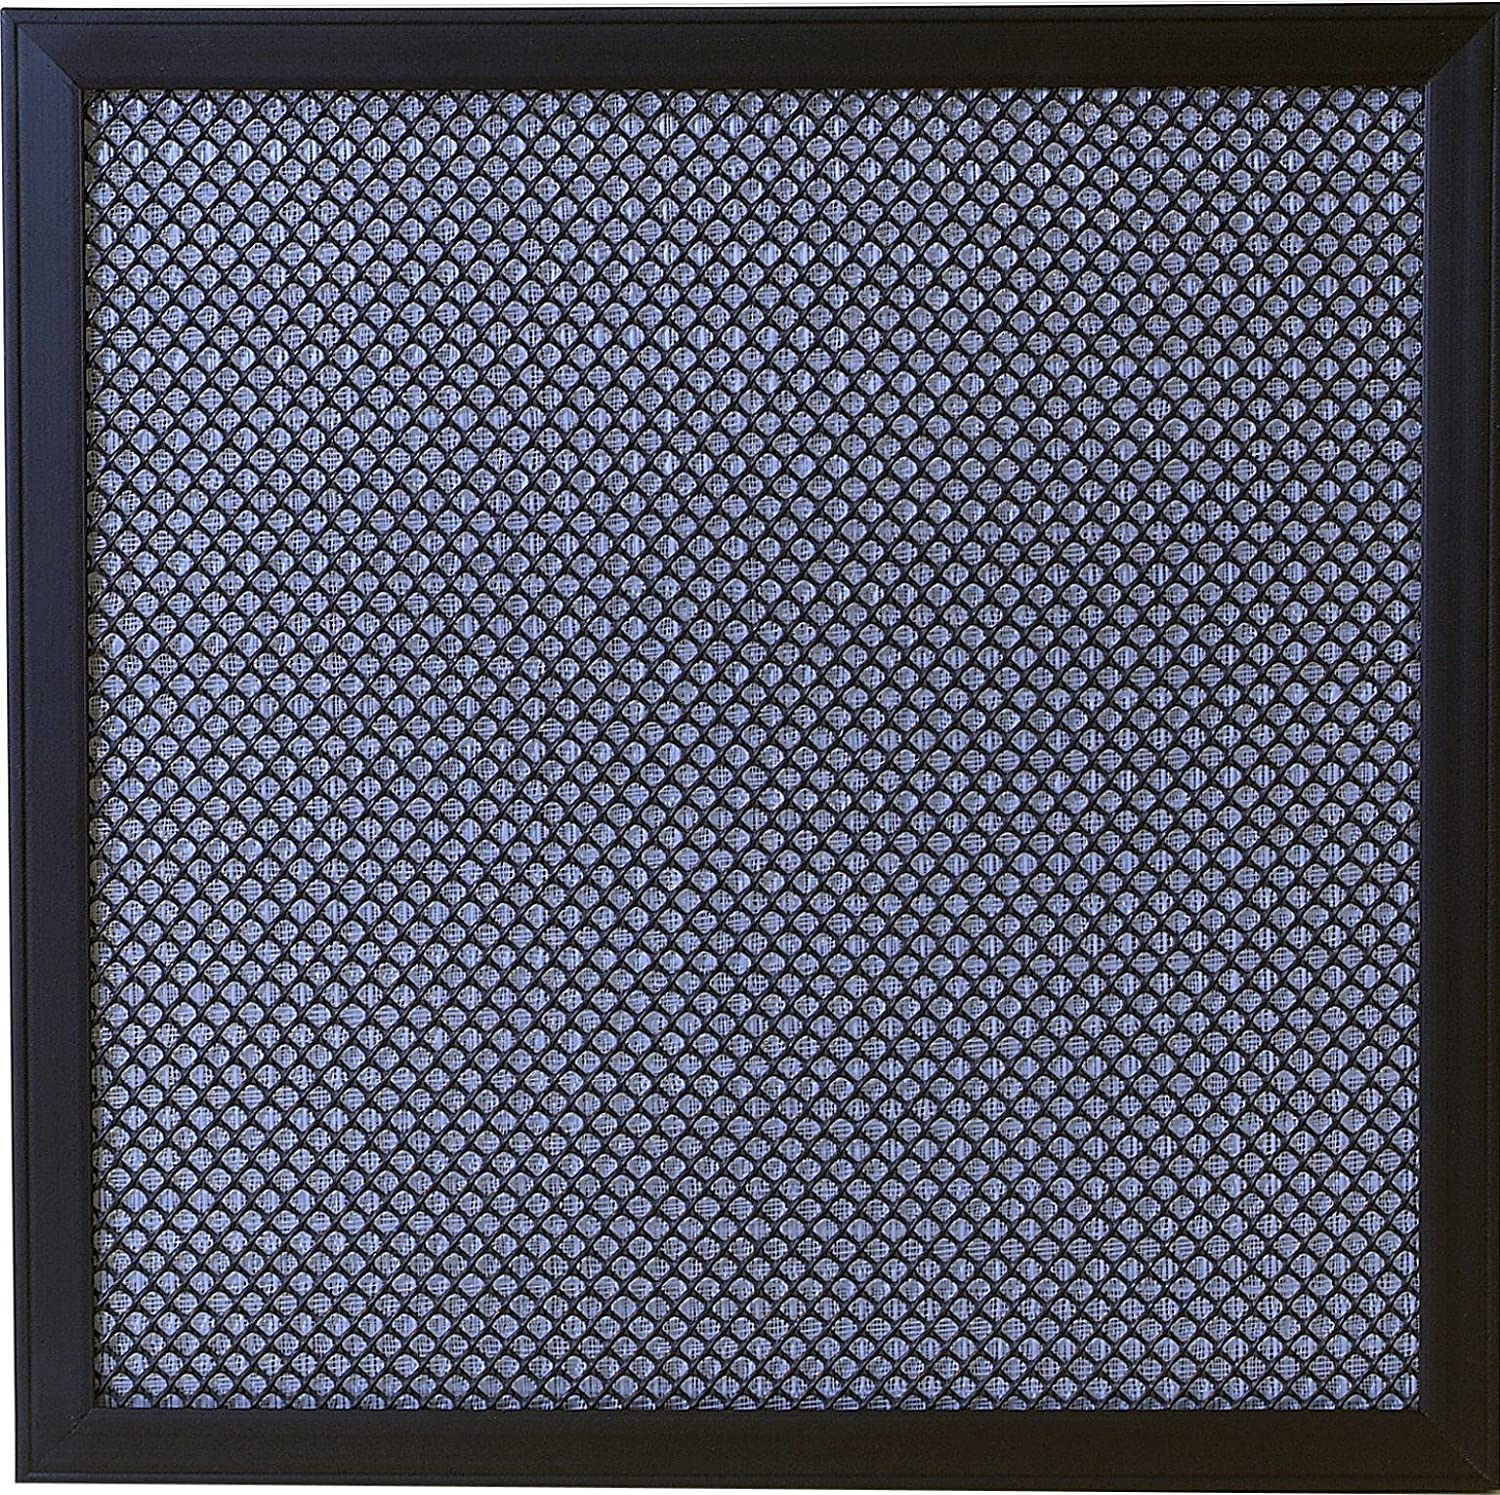 16x19x2 A+2000 Electrostatic Air Filter - Lifetime - Permanent - Washable - MERV 8 - Furnace HVAC Filtration Manufacturing